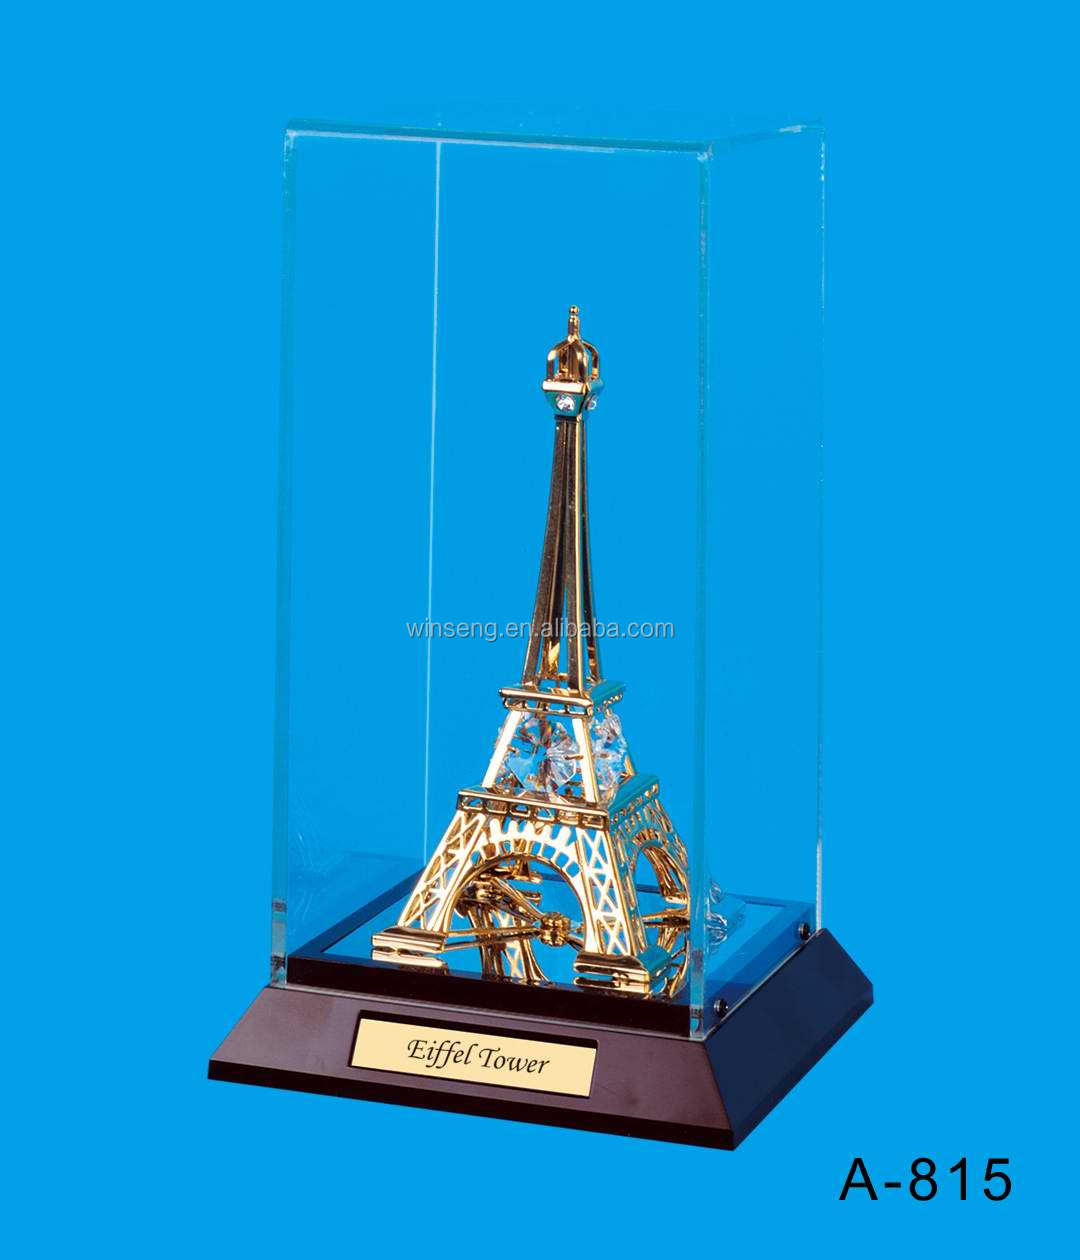 24K gold plated Eiffel Tower Packed in Acrylic Box